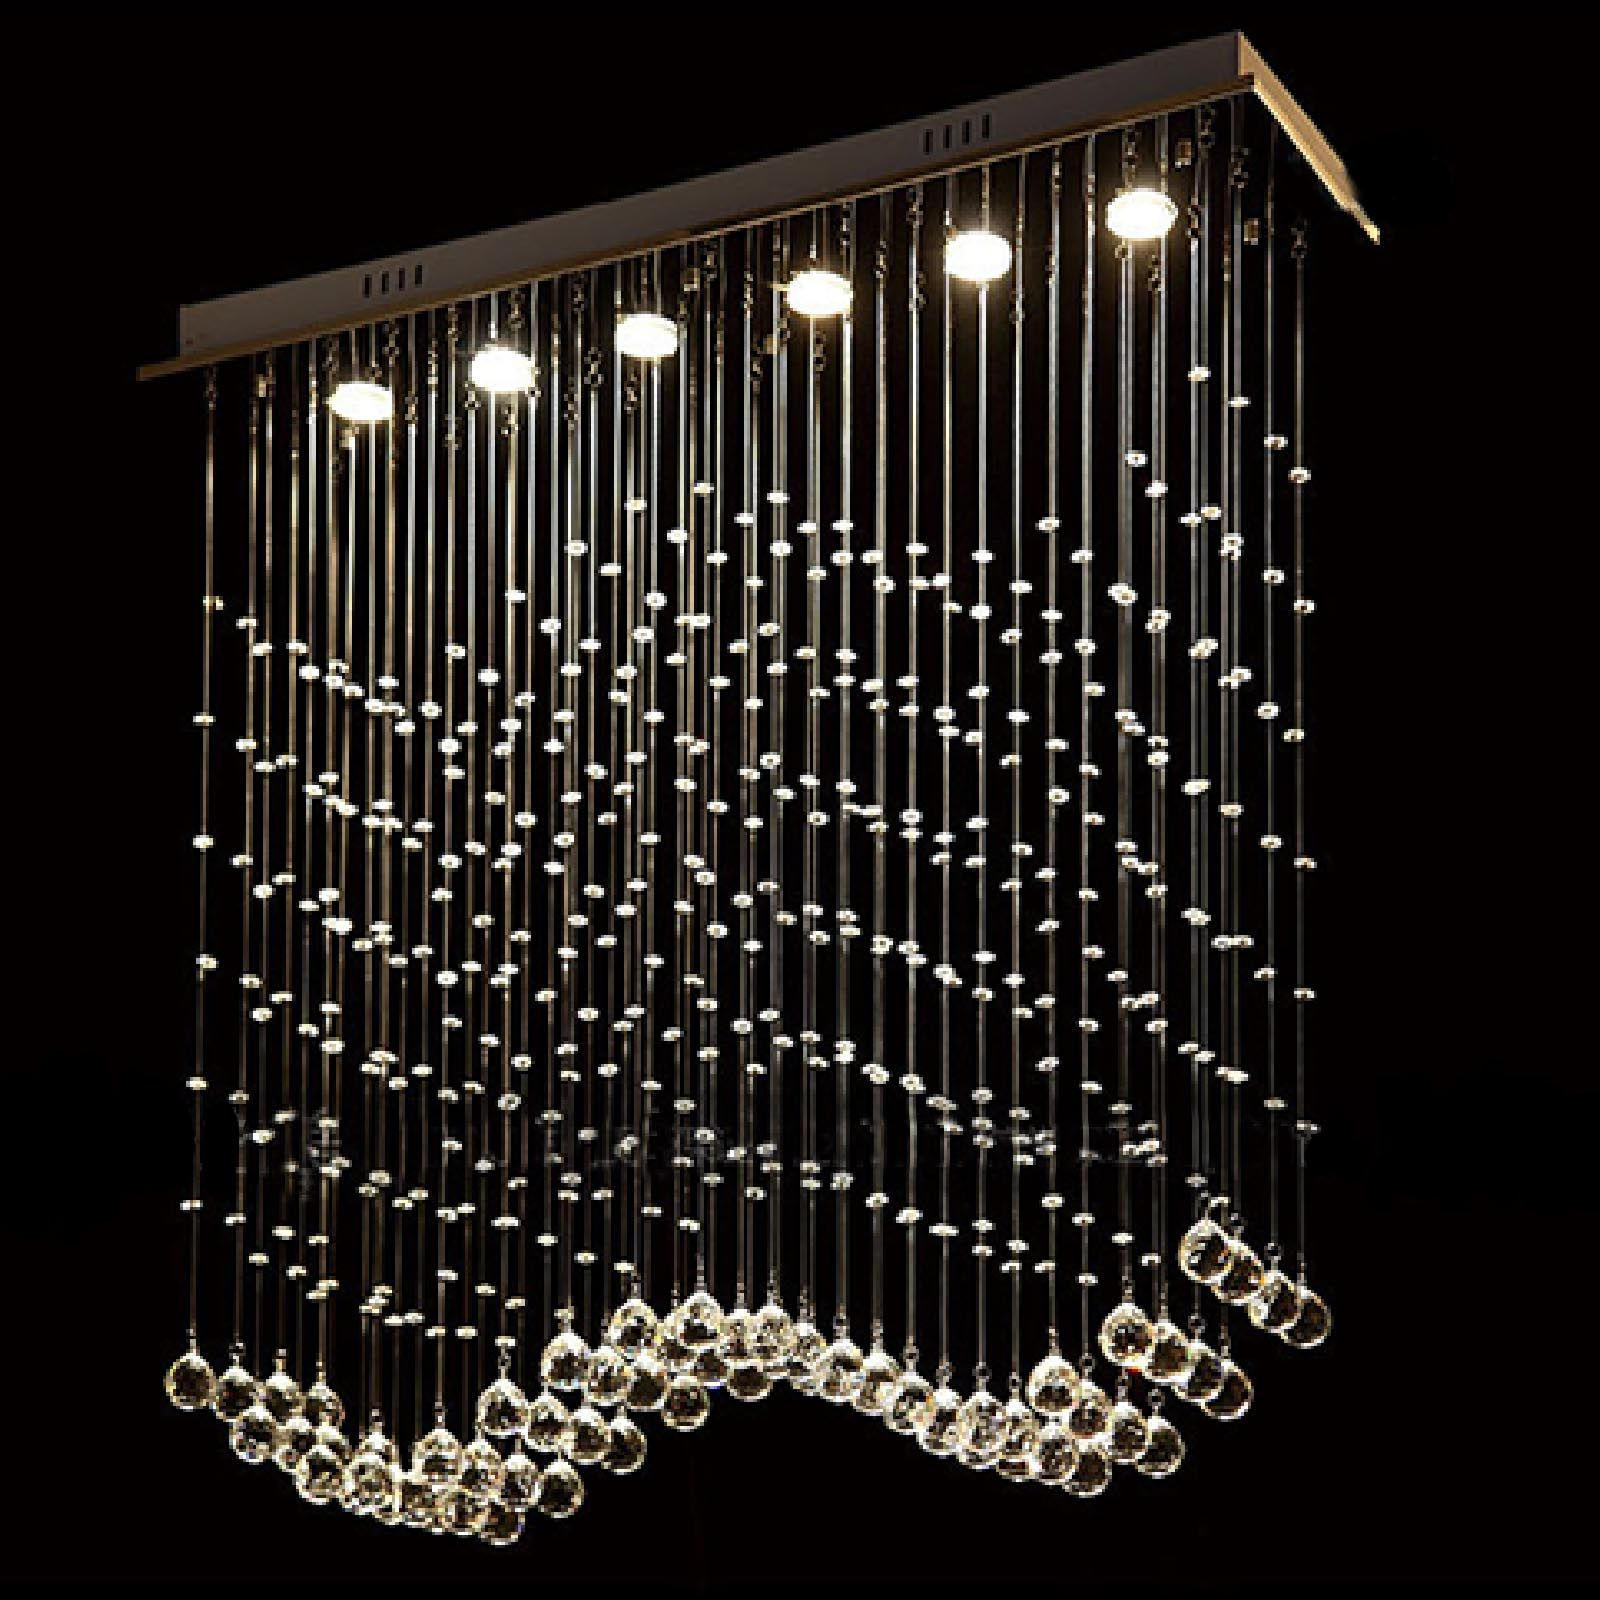 Byb new wave raindrop crystal chandelier rain drop design led byb new wave raindrop crystal chandelier rain drop design led lighting h100w25 arubaitofo Image collections